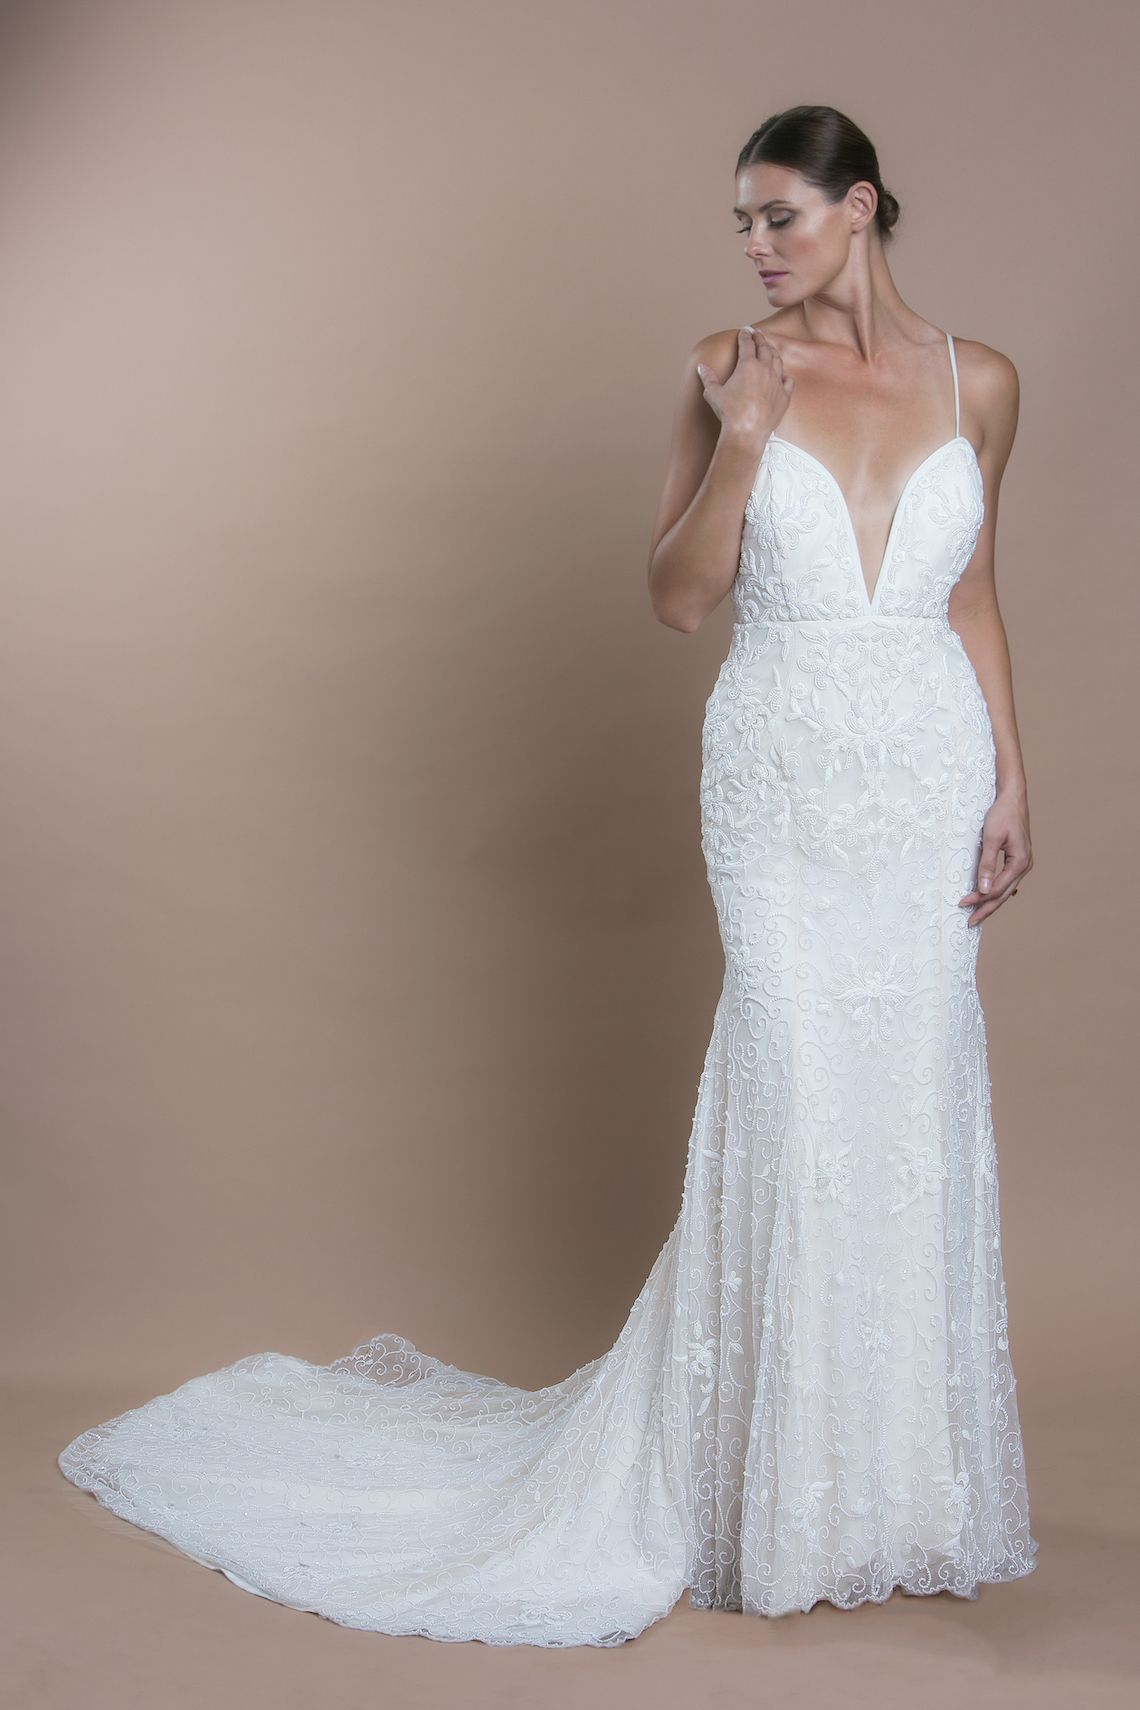 Dianna agron wedding dress  Floralinspired wedding dresses for when the bridal bouquet is not